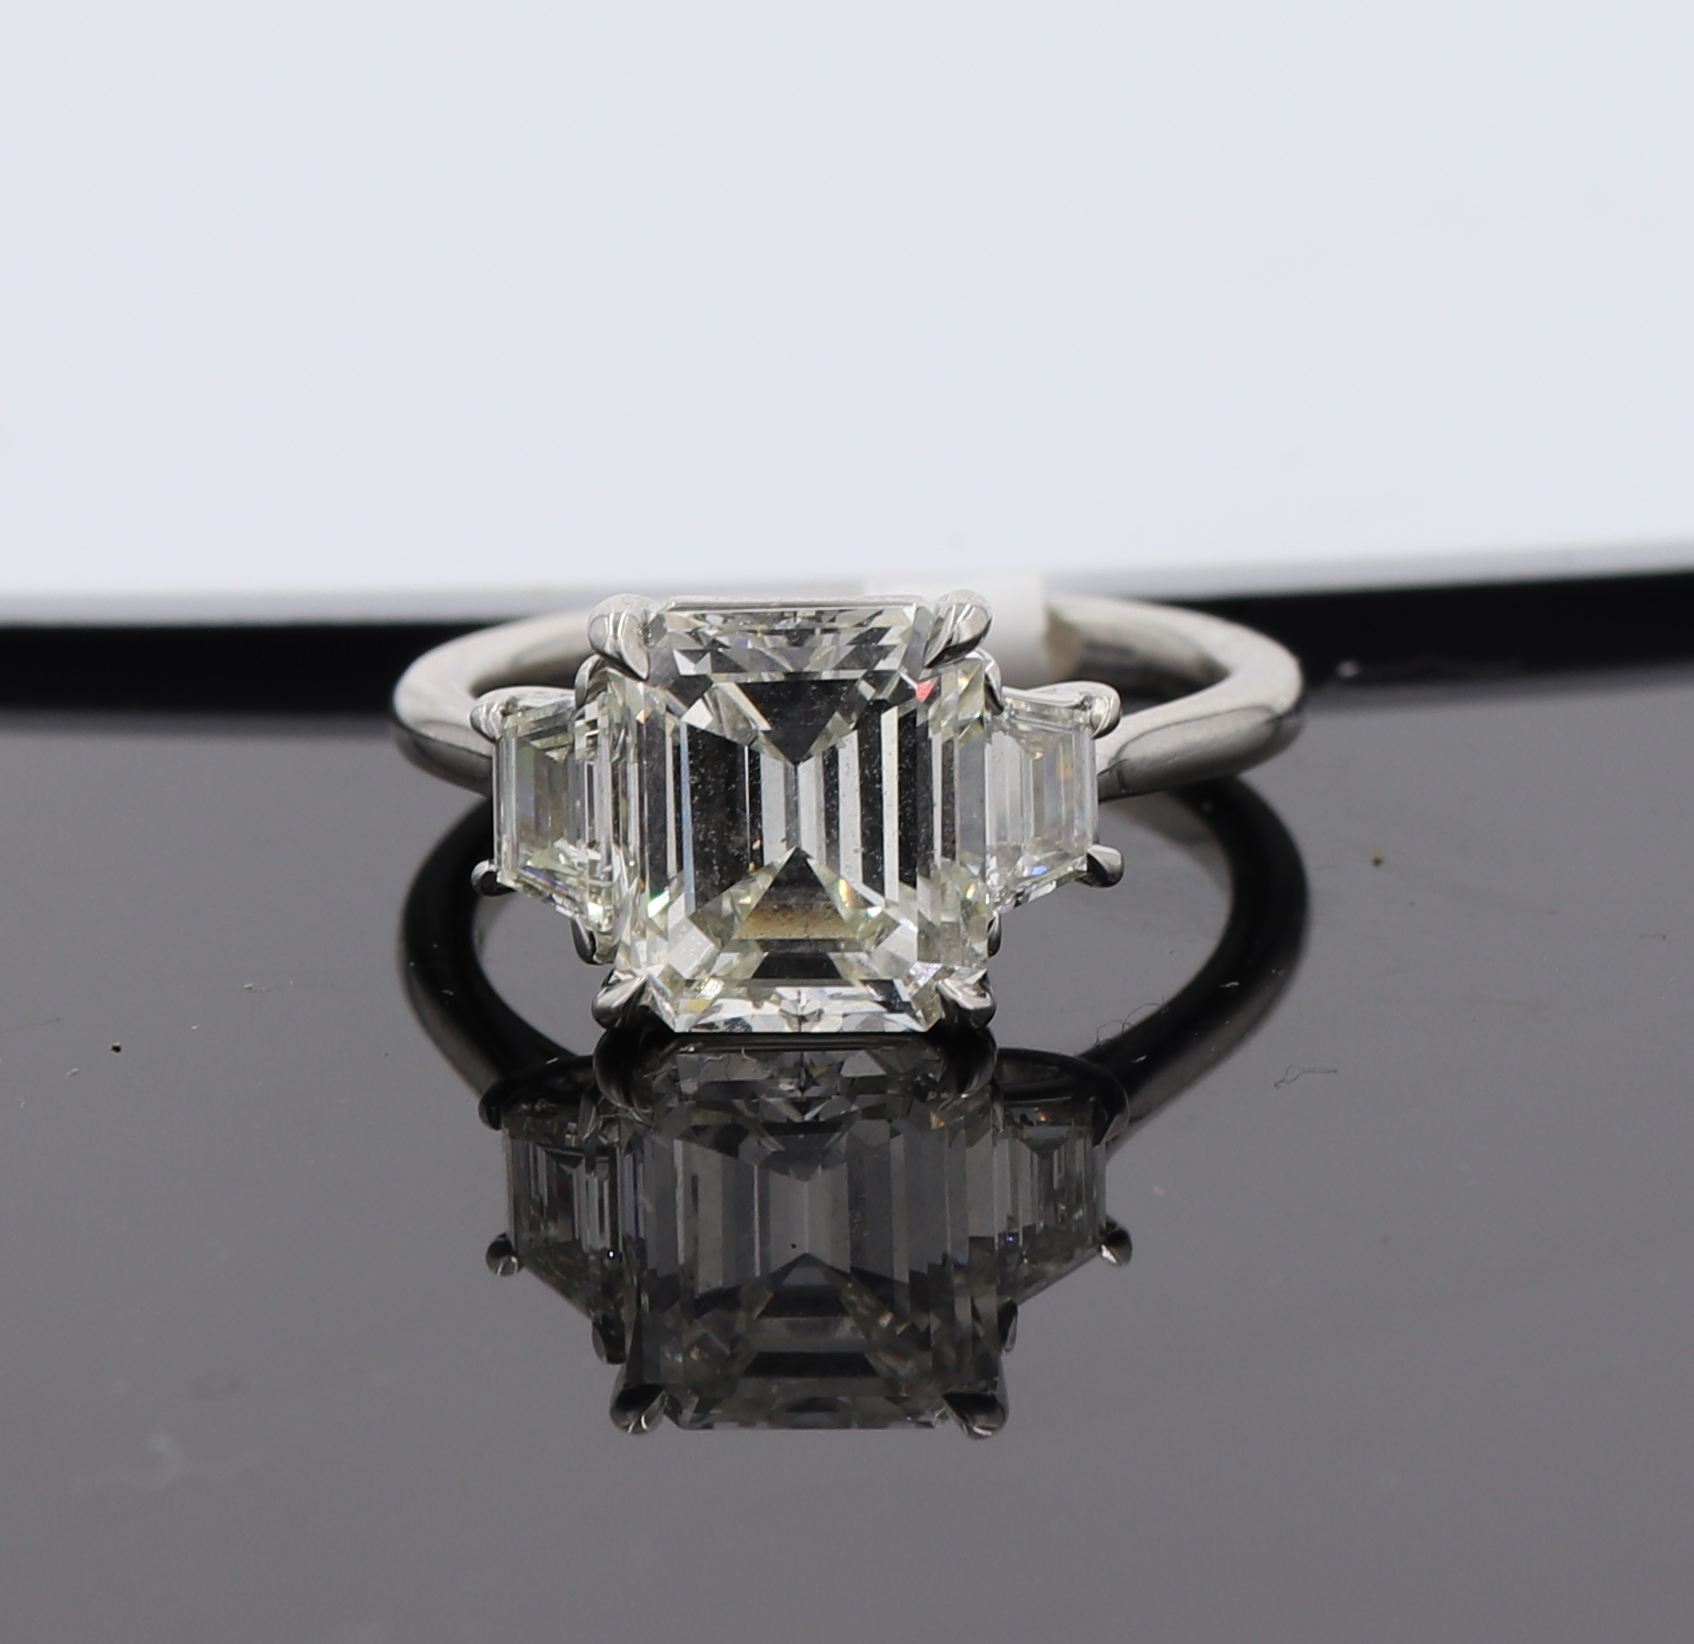 Platinum 3.02 CT Main Emerald Cut With Side Stones Engagement Ring